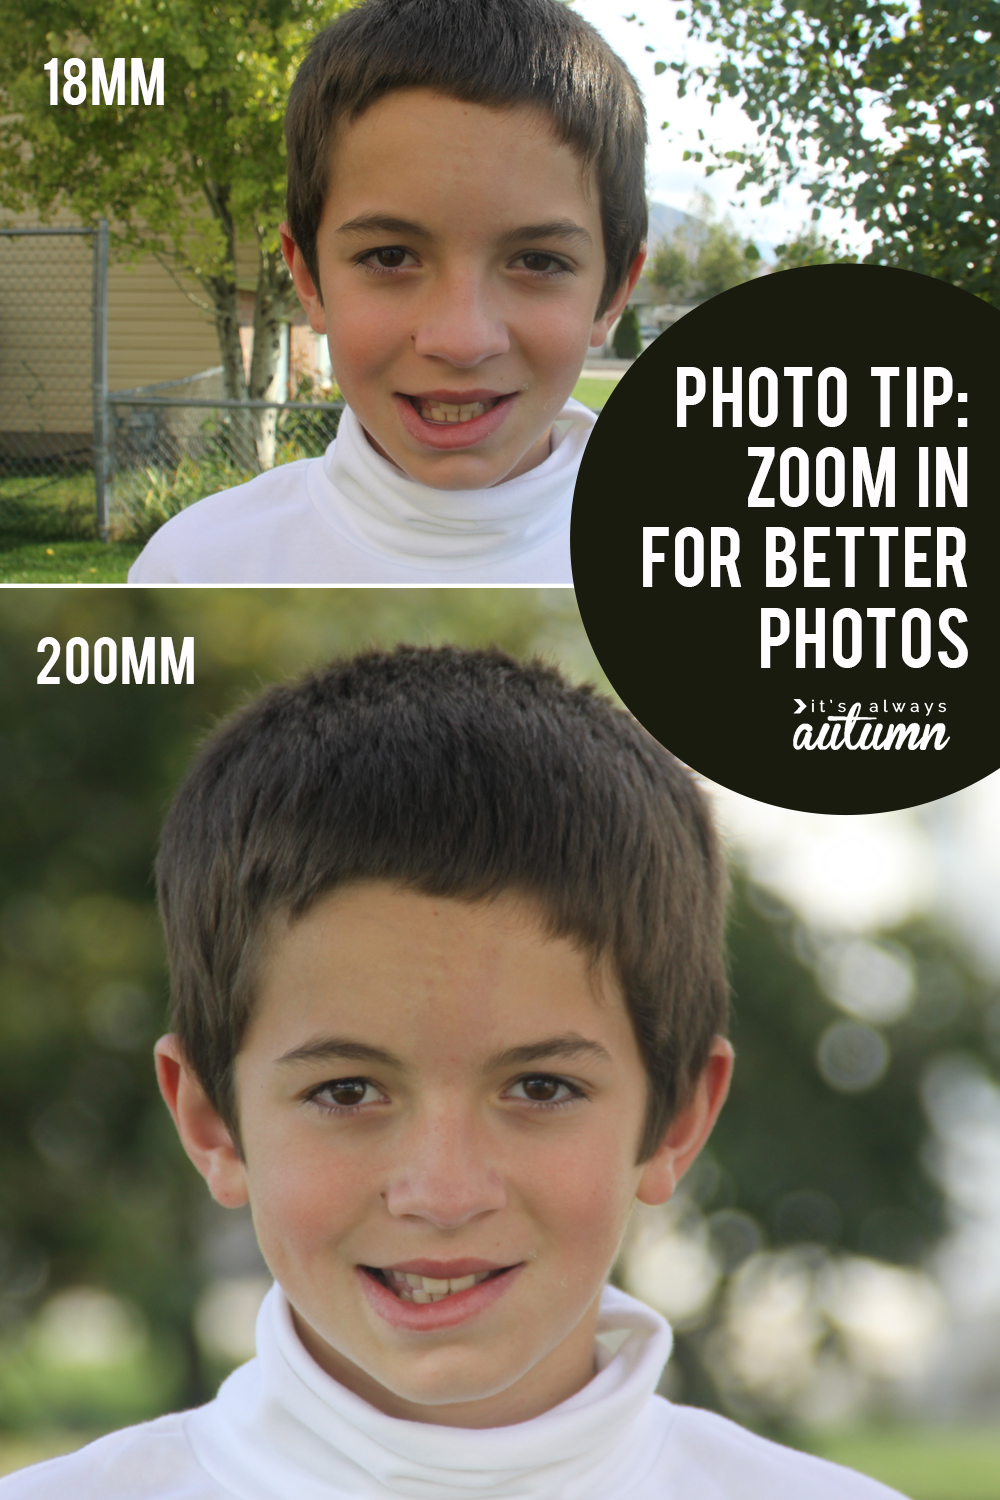 Photography tip: Understanding focal length. Focal length (whether you are zoomed in or out) makes a HUGE difference in how your photos look.